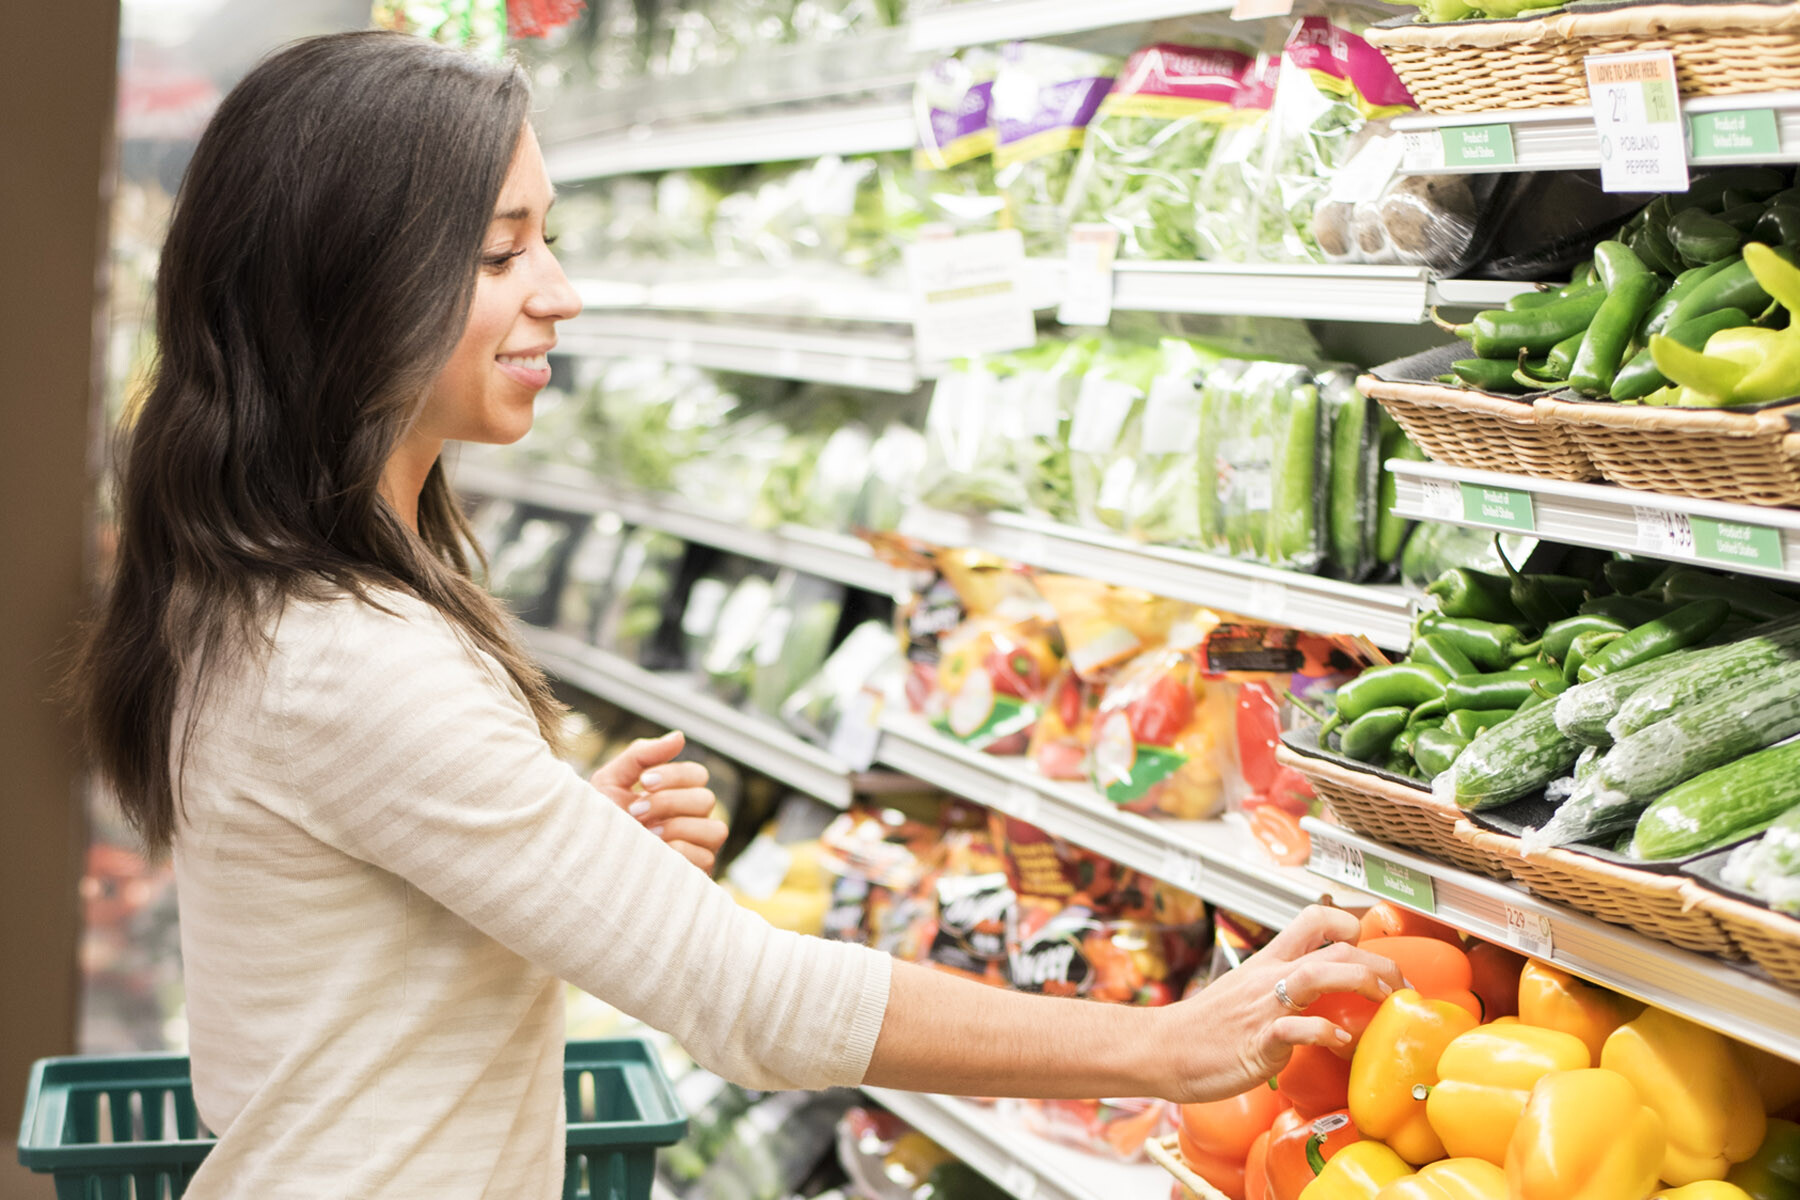 Un-Resolution Way to Eat Less Junk